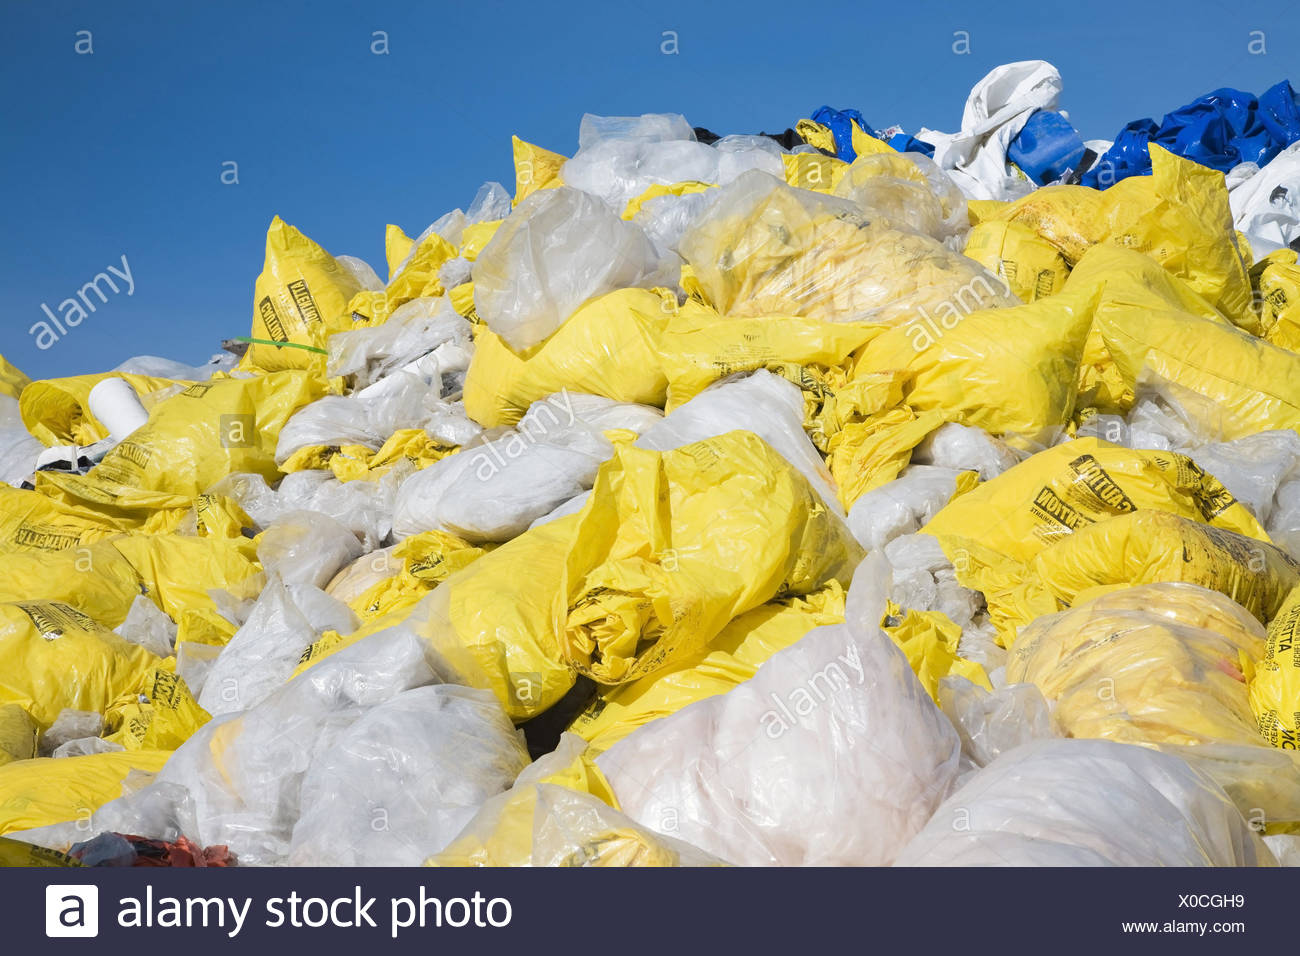 Discarded plastic bags filled with asbestos fibres at a recycling yard, Laval, Quebec, Canada - Stock Image